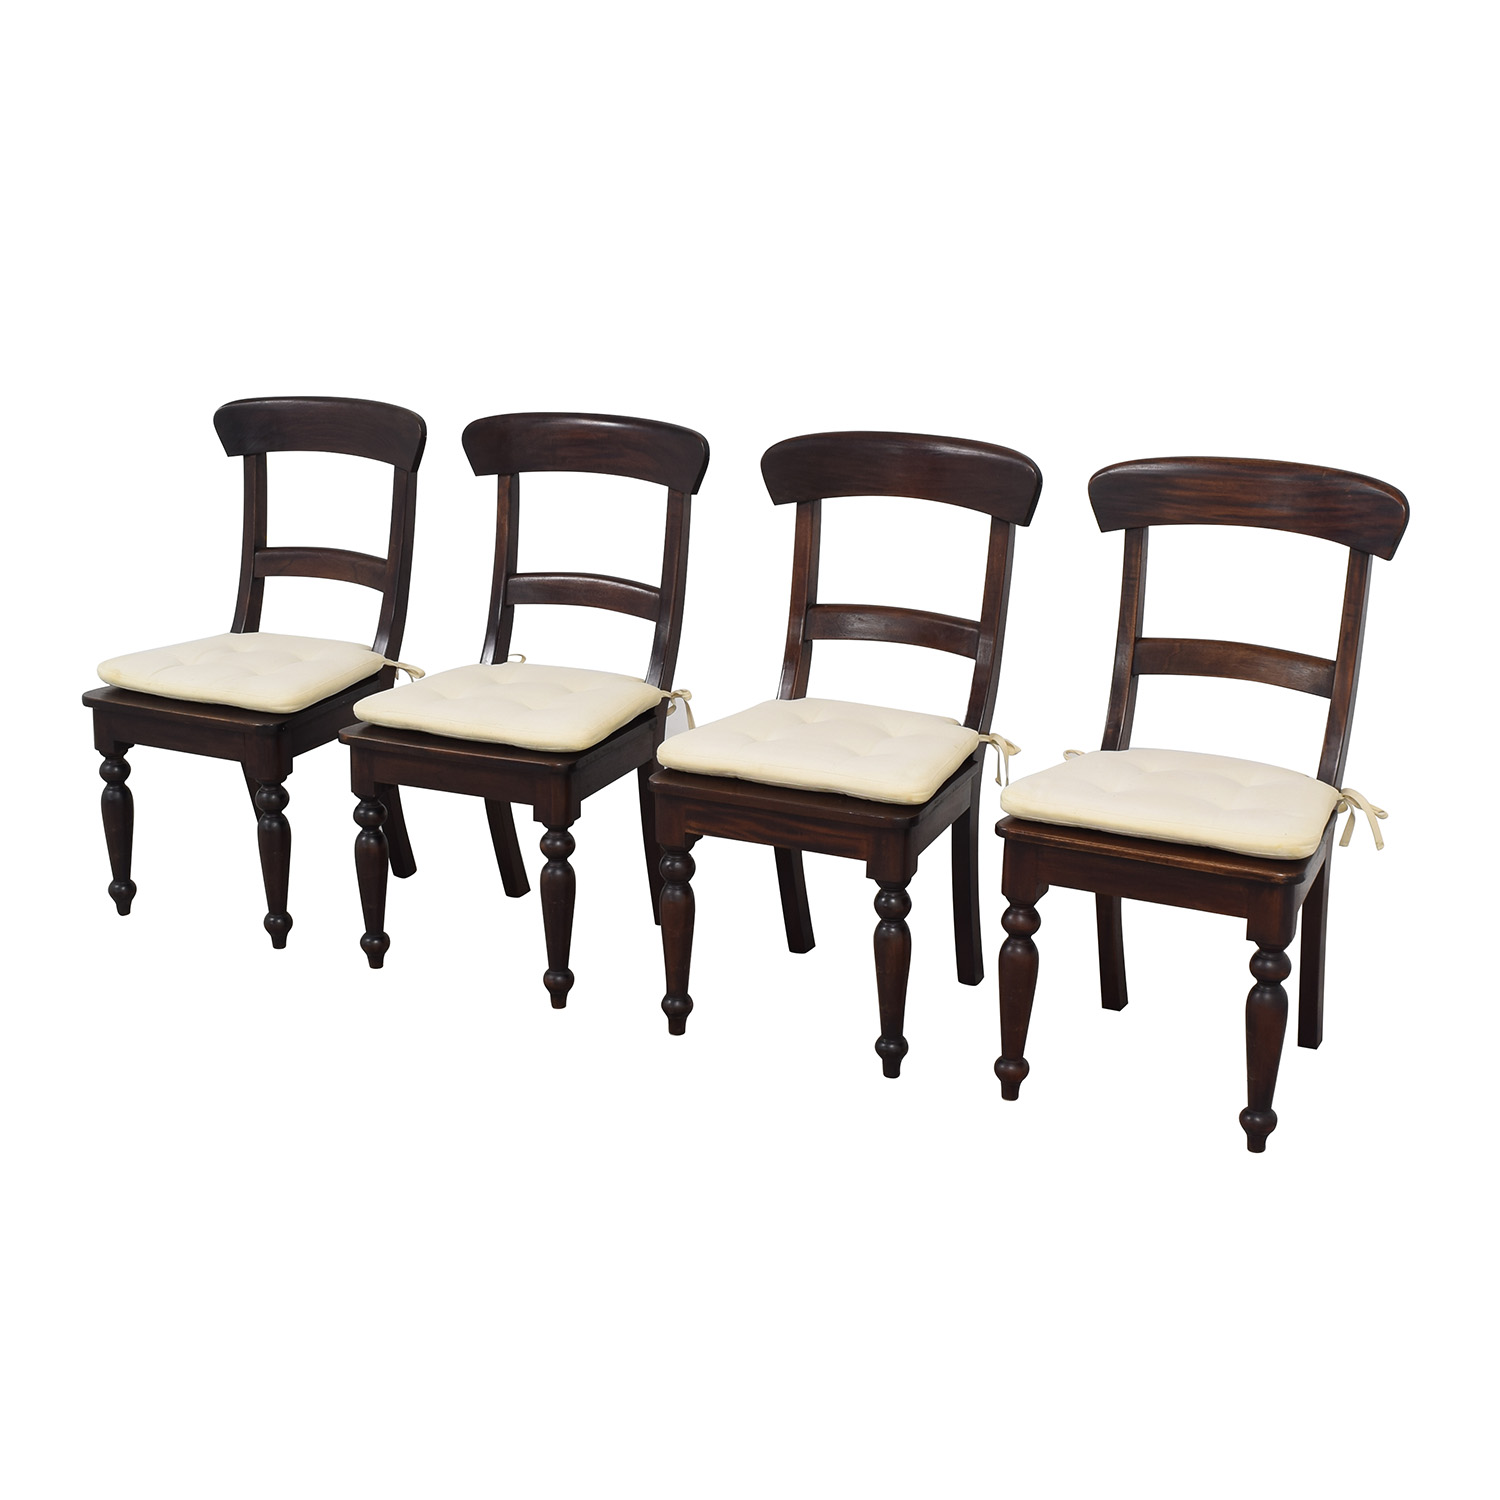 buy Crate & Barrel Farmhouse Dining Chairs Crate & Barrel Chairs